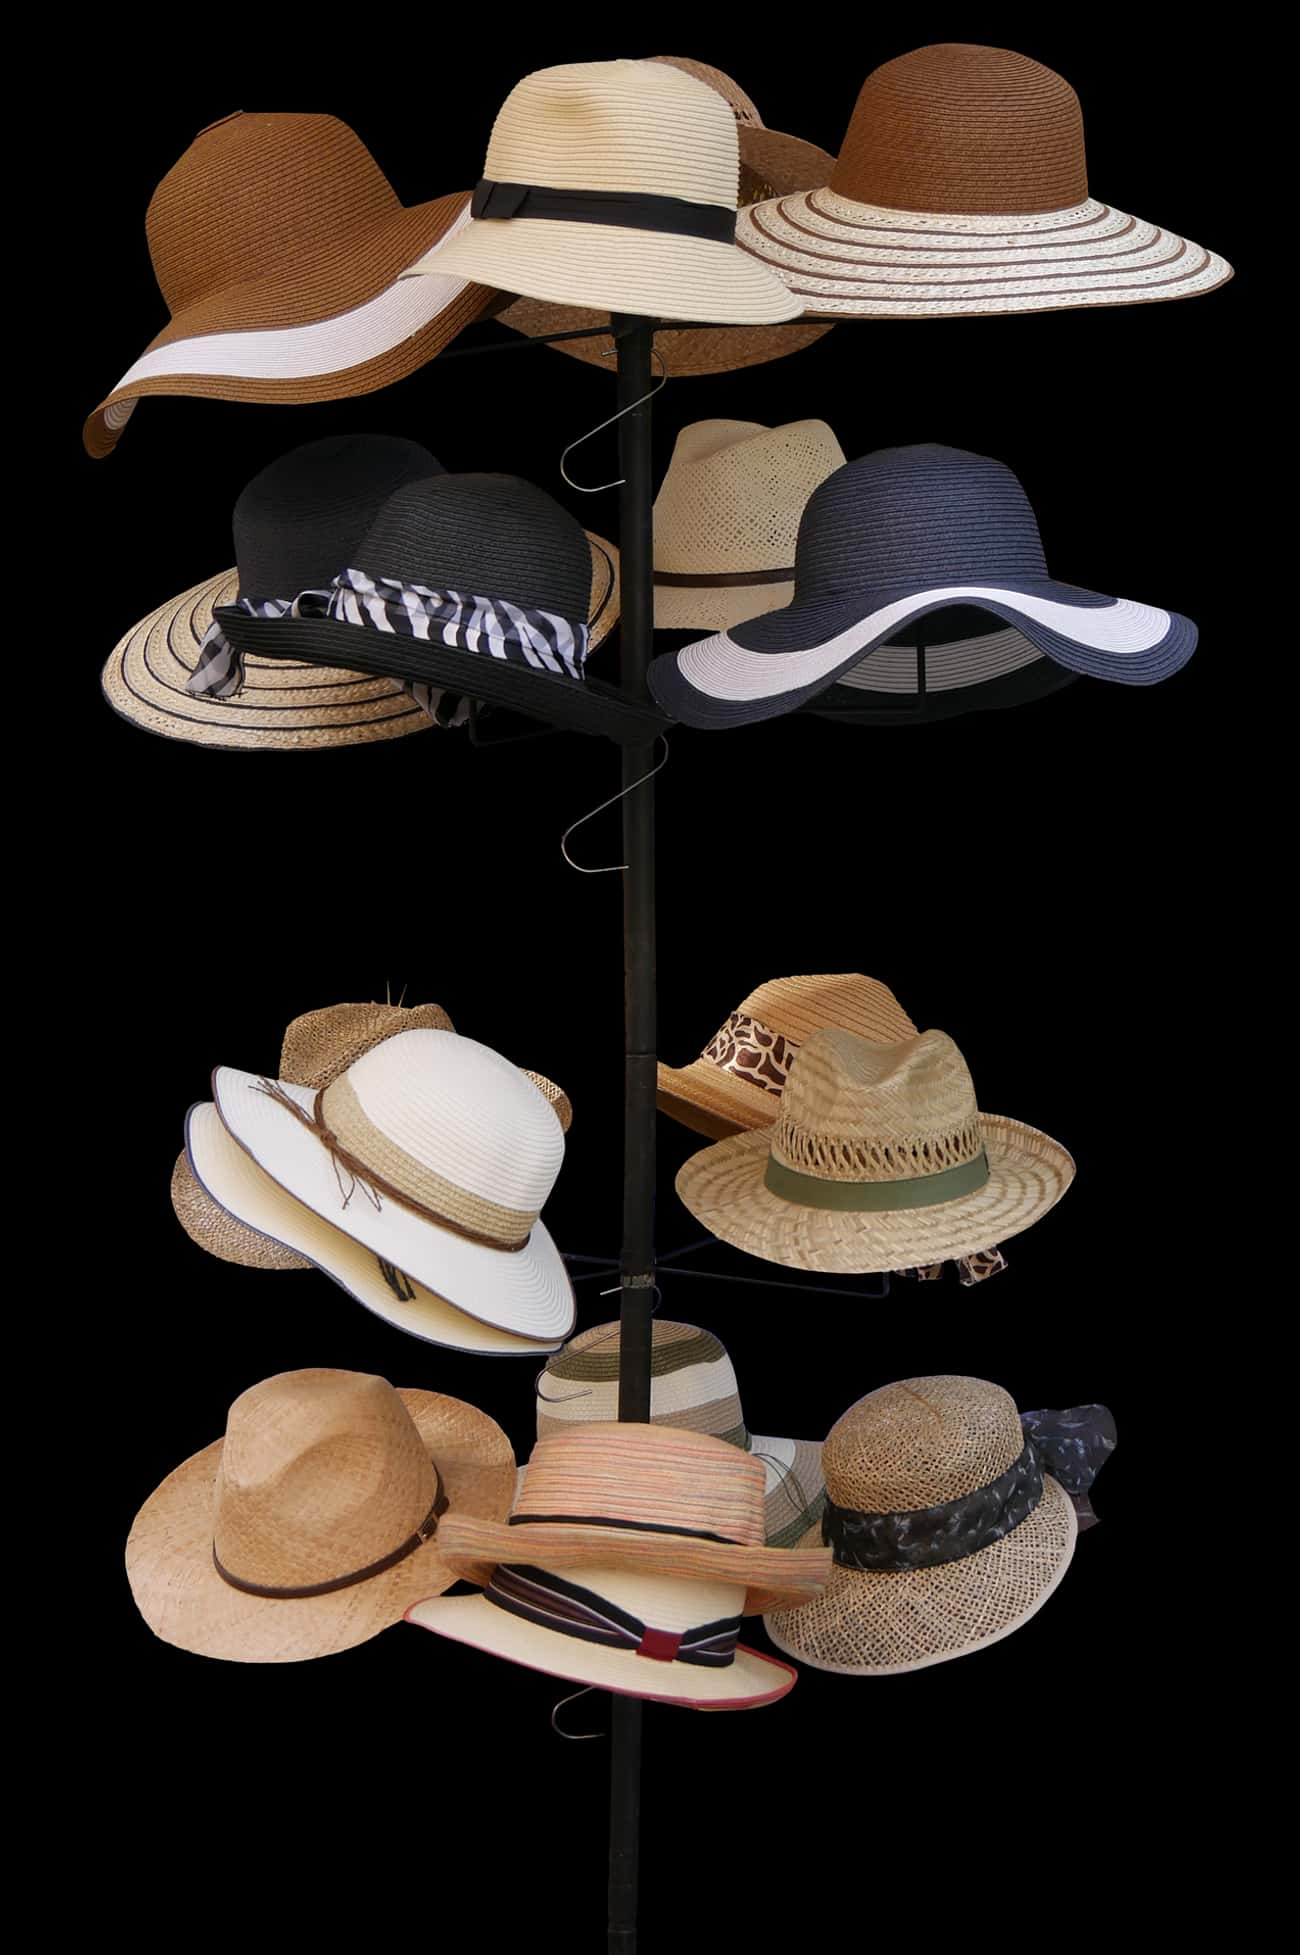 Hat On Bed is listed (or ranked) 4 on the list The Origins of the 13 Most Common Superstitions